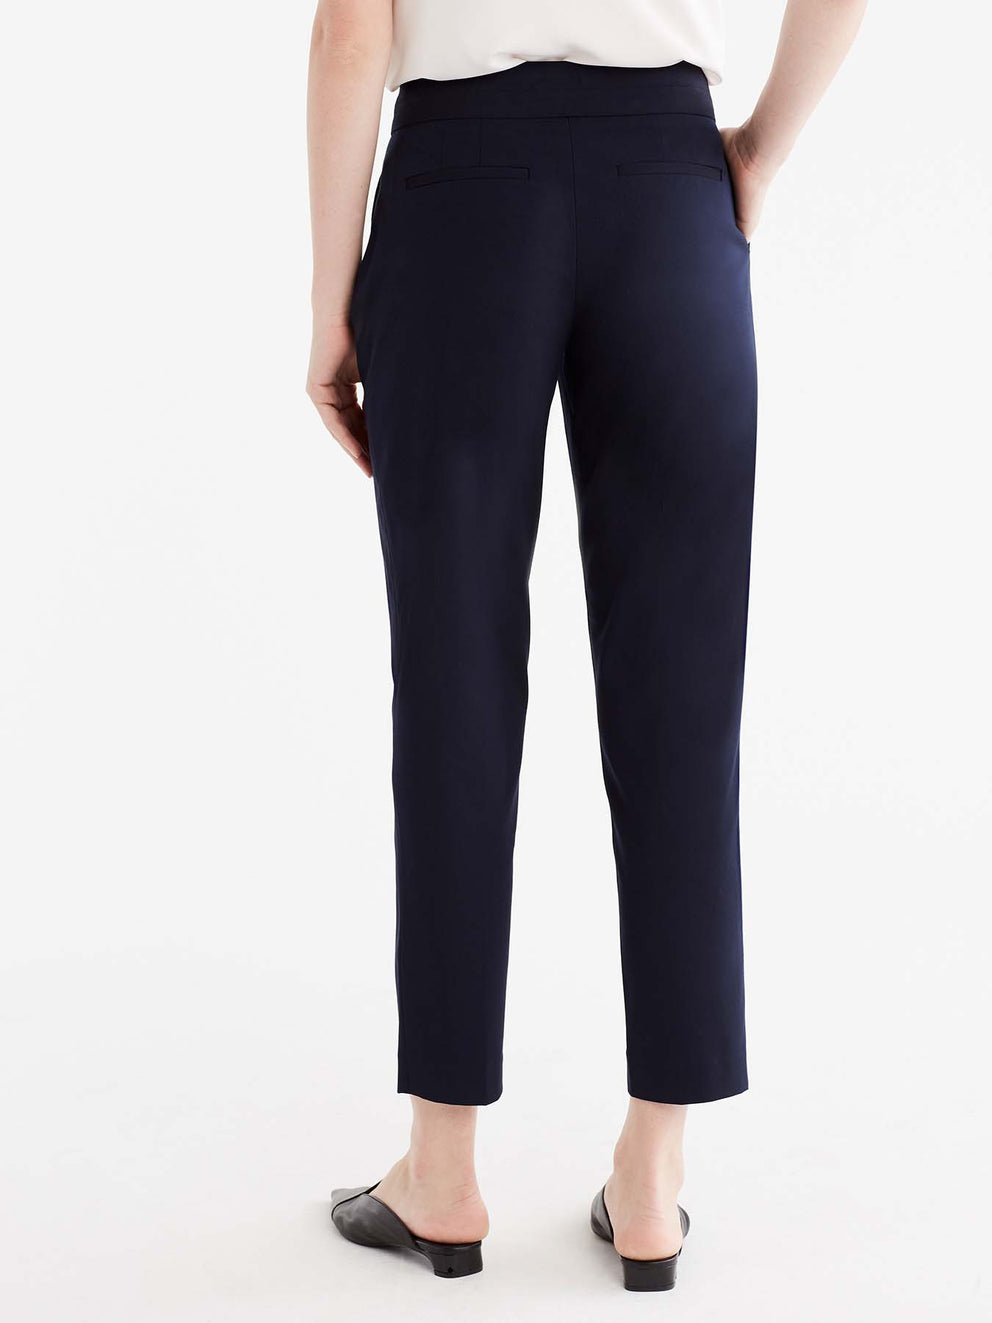 The Jones New York Washable Grace Ankle Pant in color Navy - Image Position 5